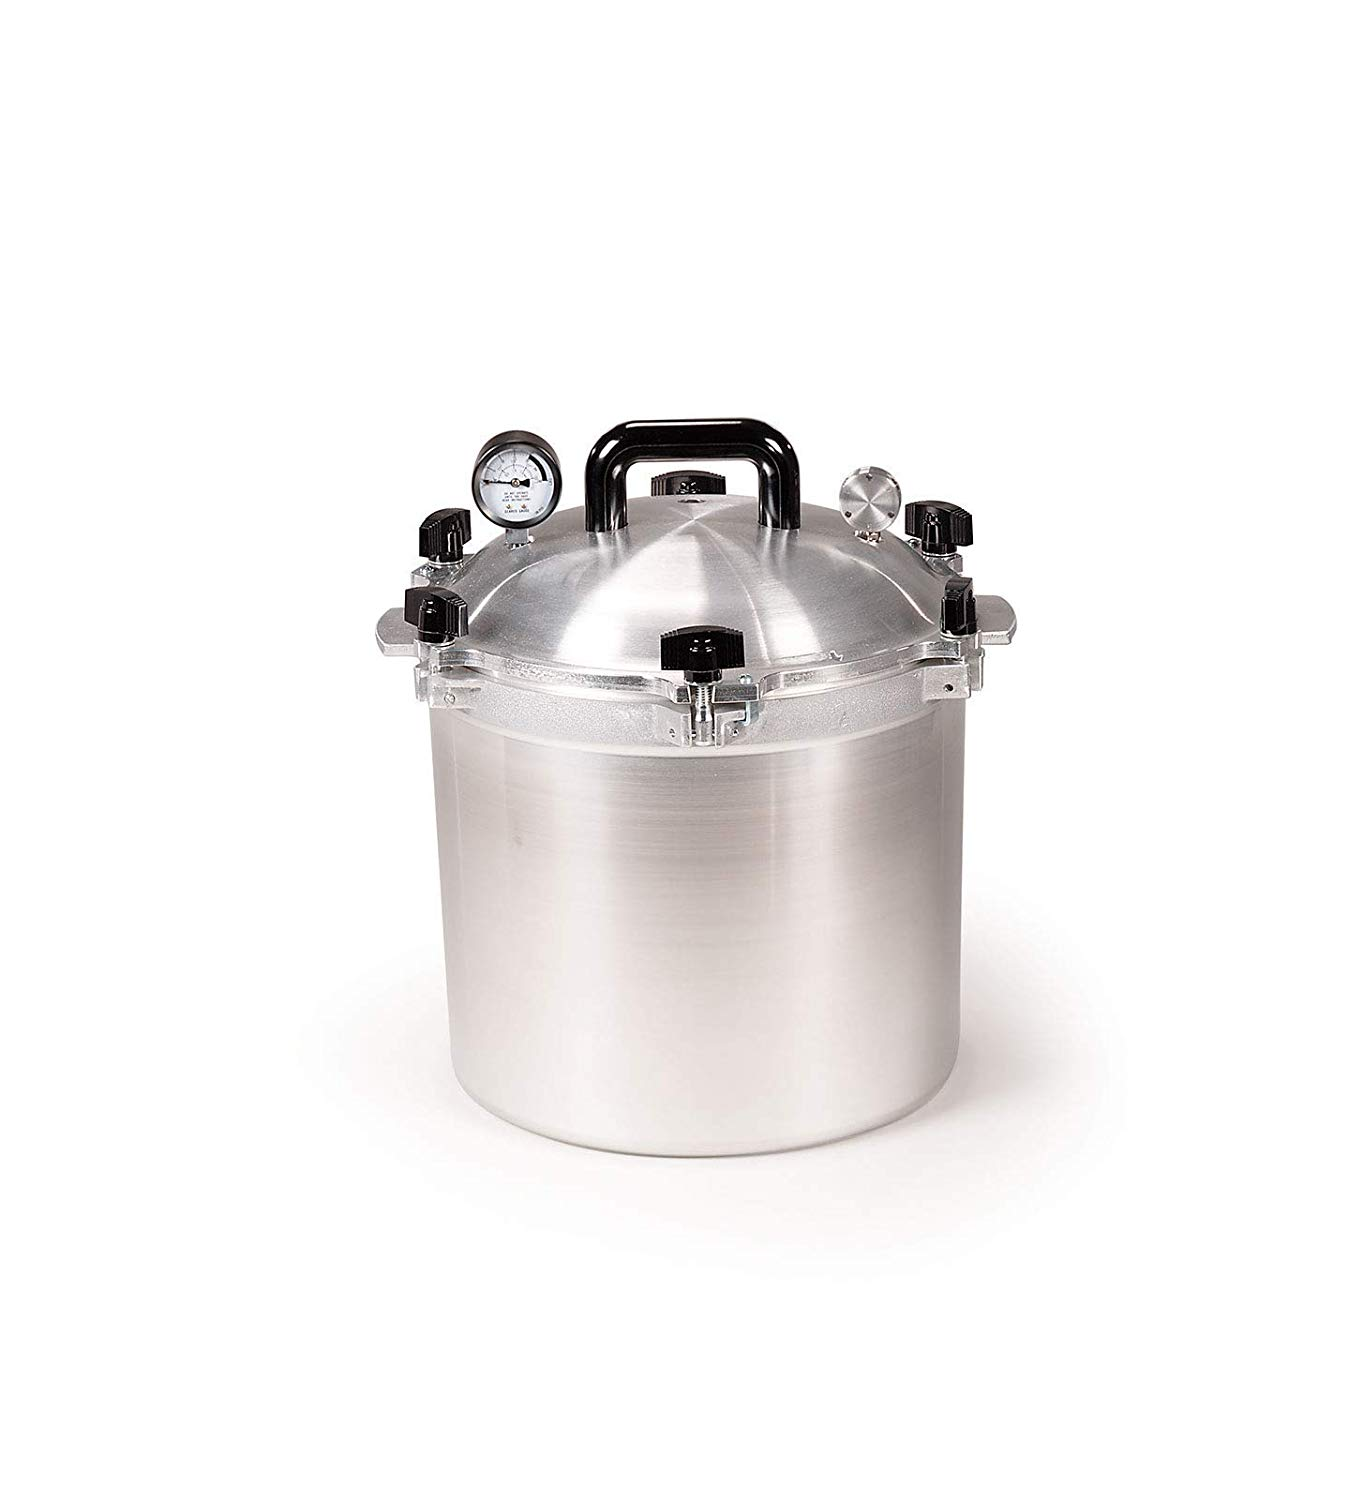 All American 21 1 2 Quart Pressure Cooker Canner